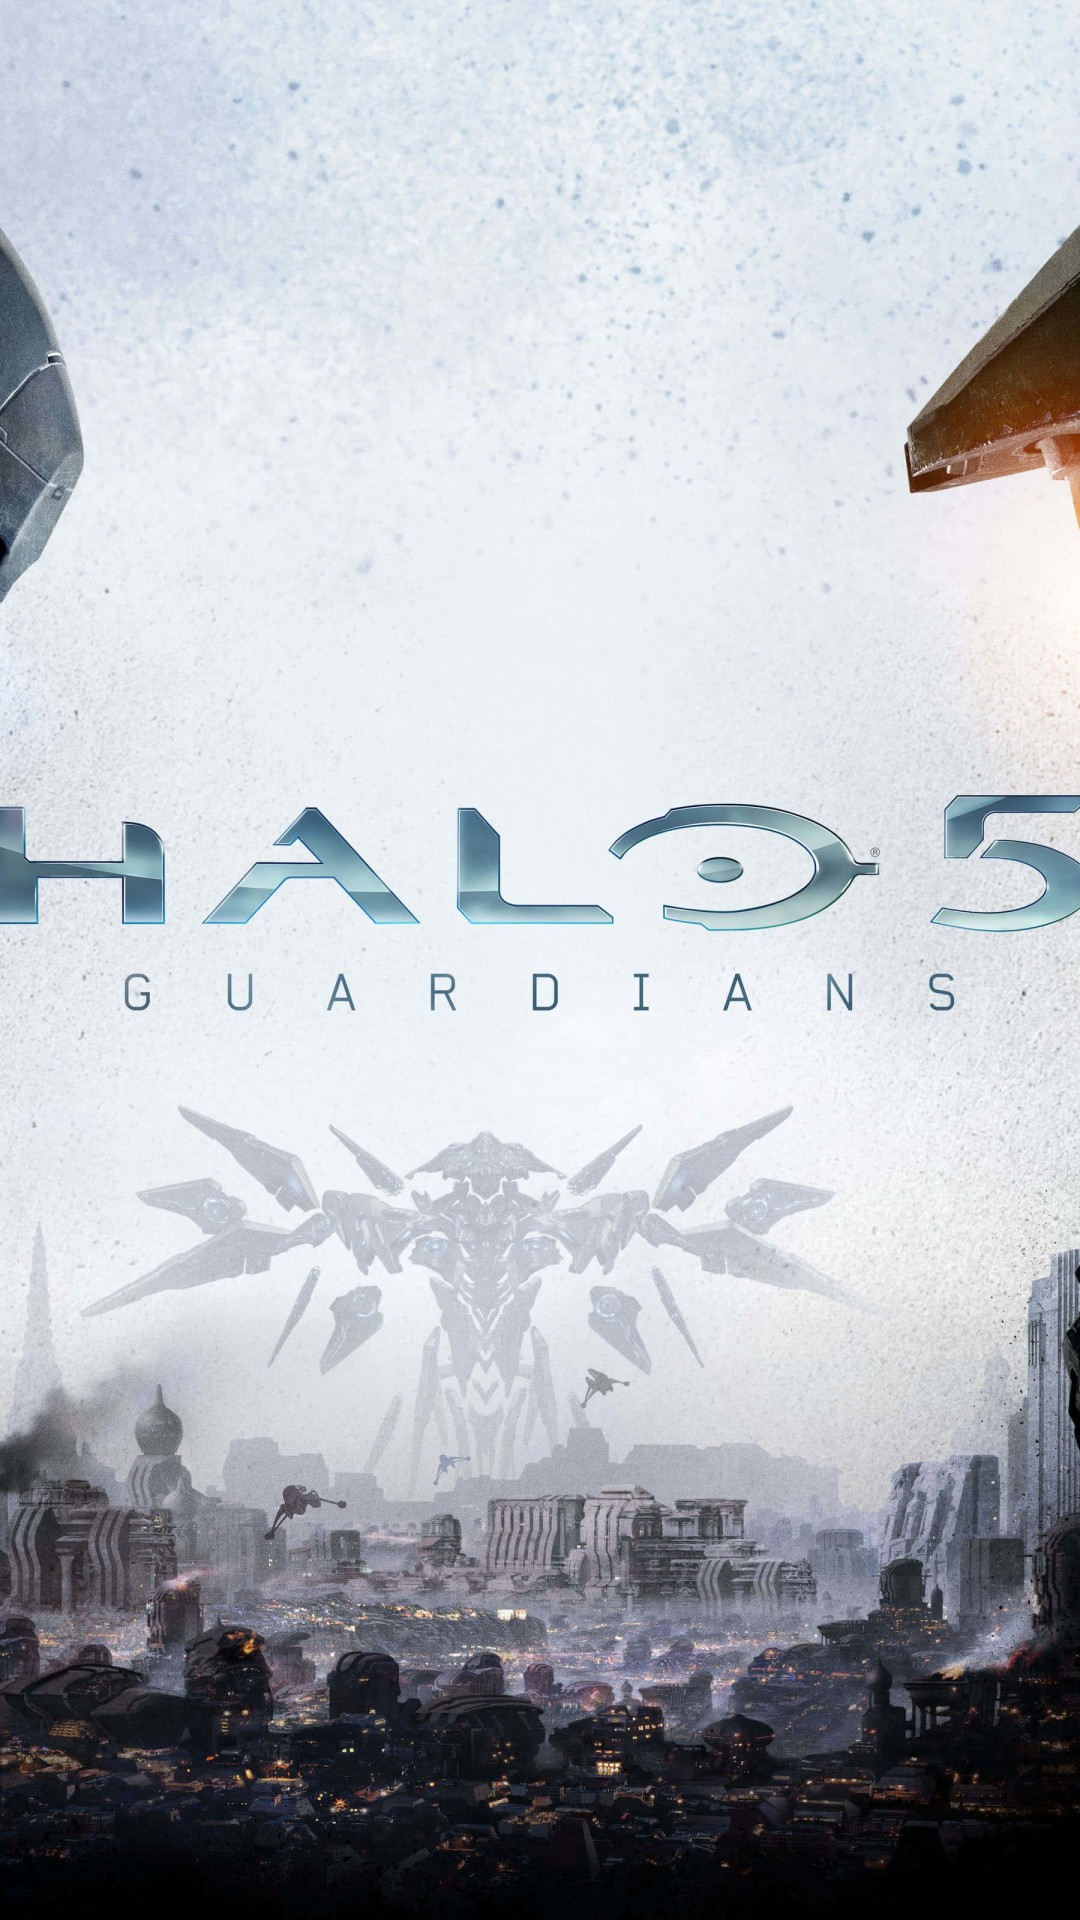 Halo 5: Guardians Wallpaper for SAMSUNG Galaxy Note 3